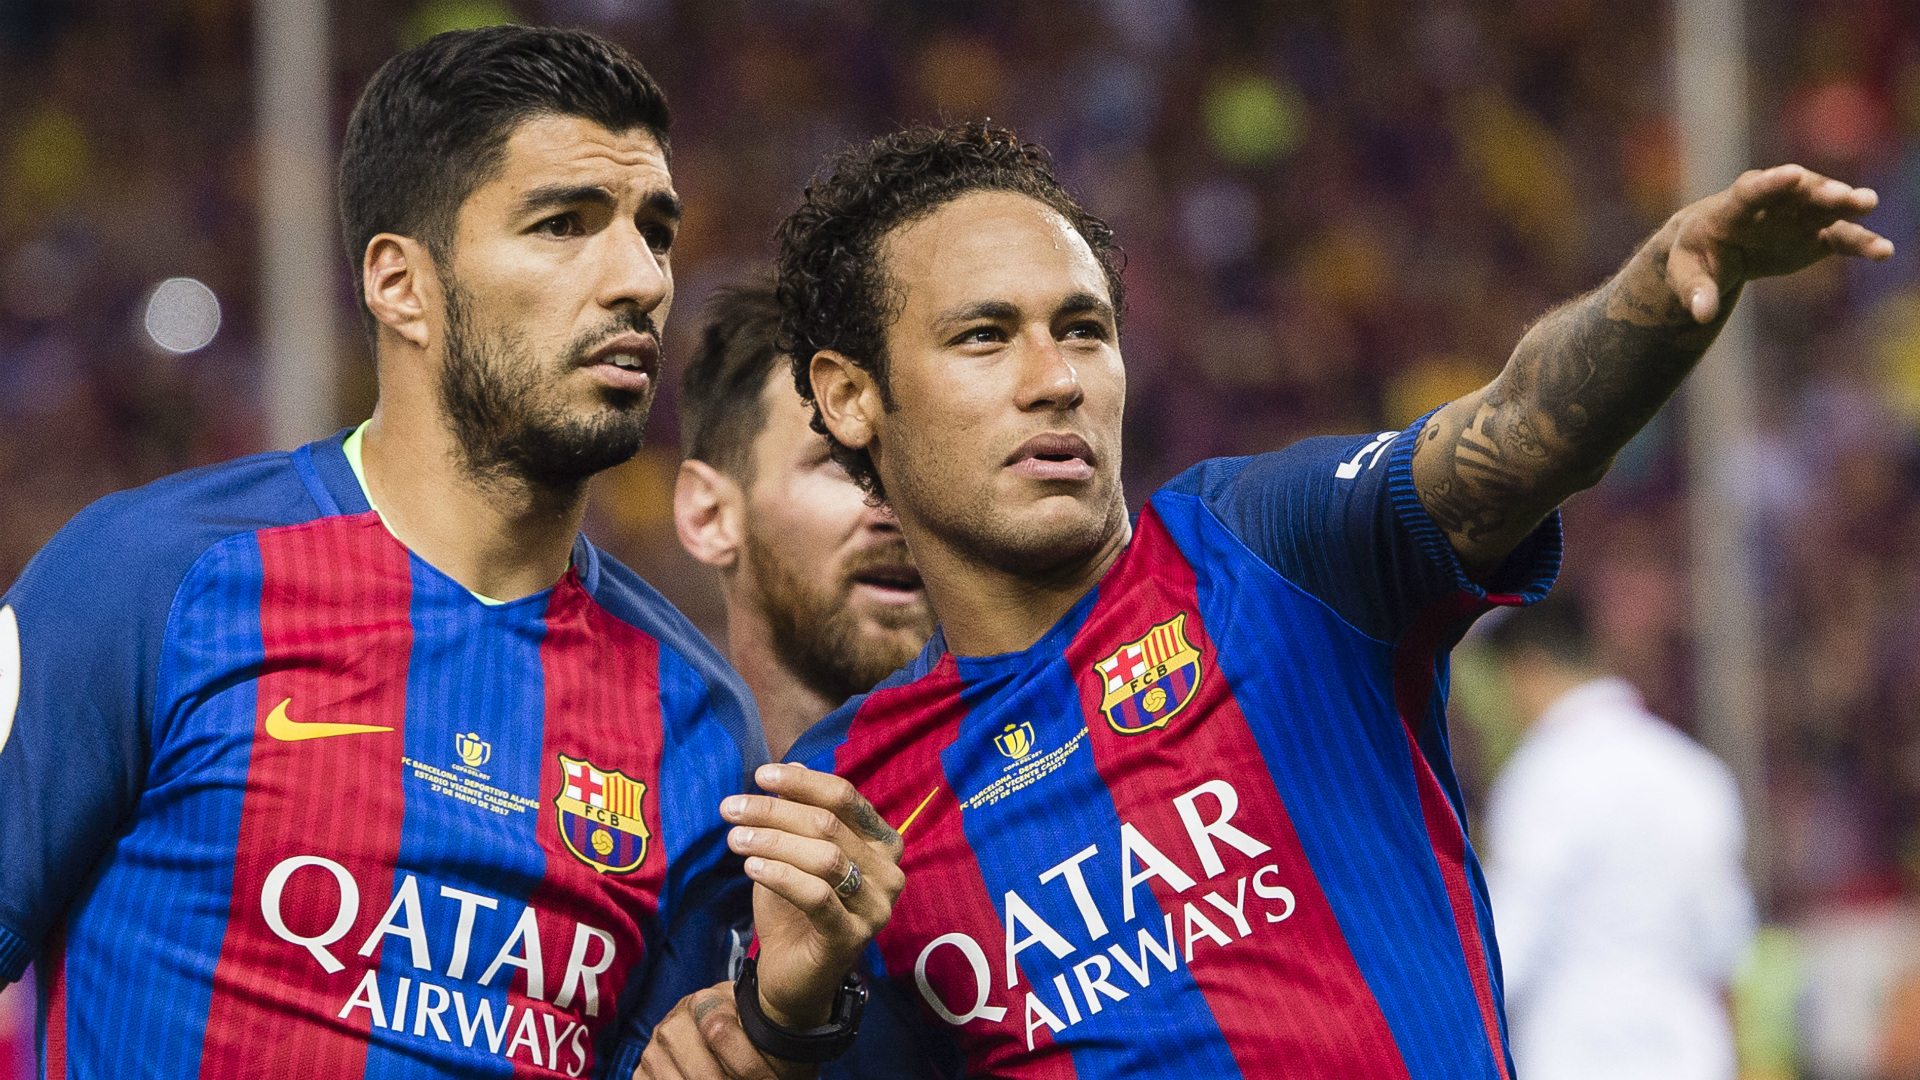 Brazil star Neymar urge PSG to sign Suarez from Barcelona this summer